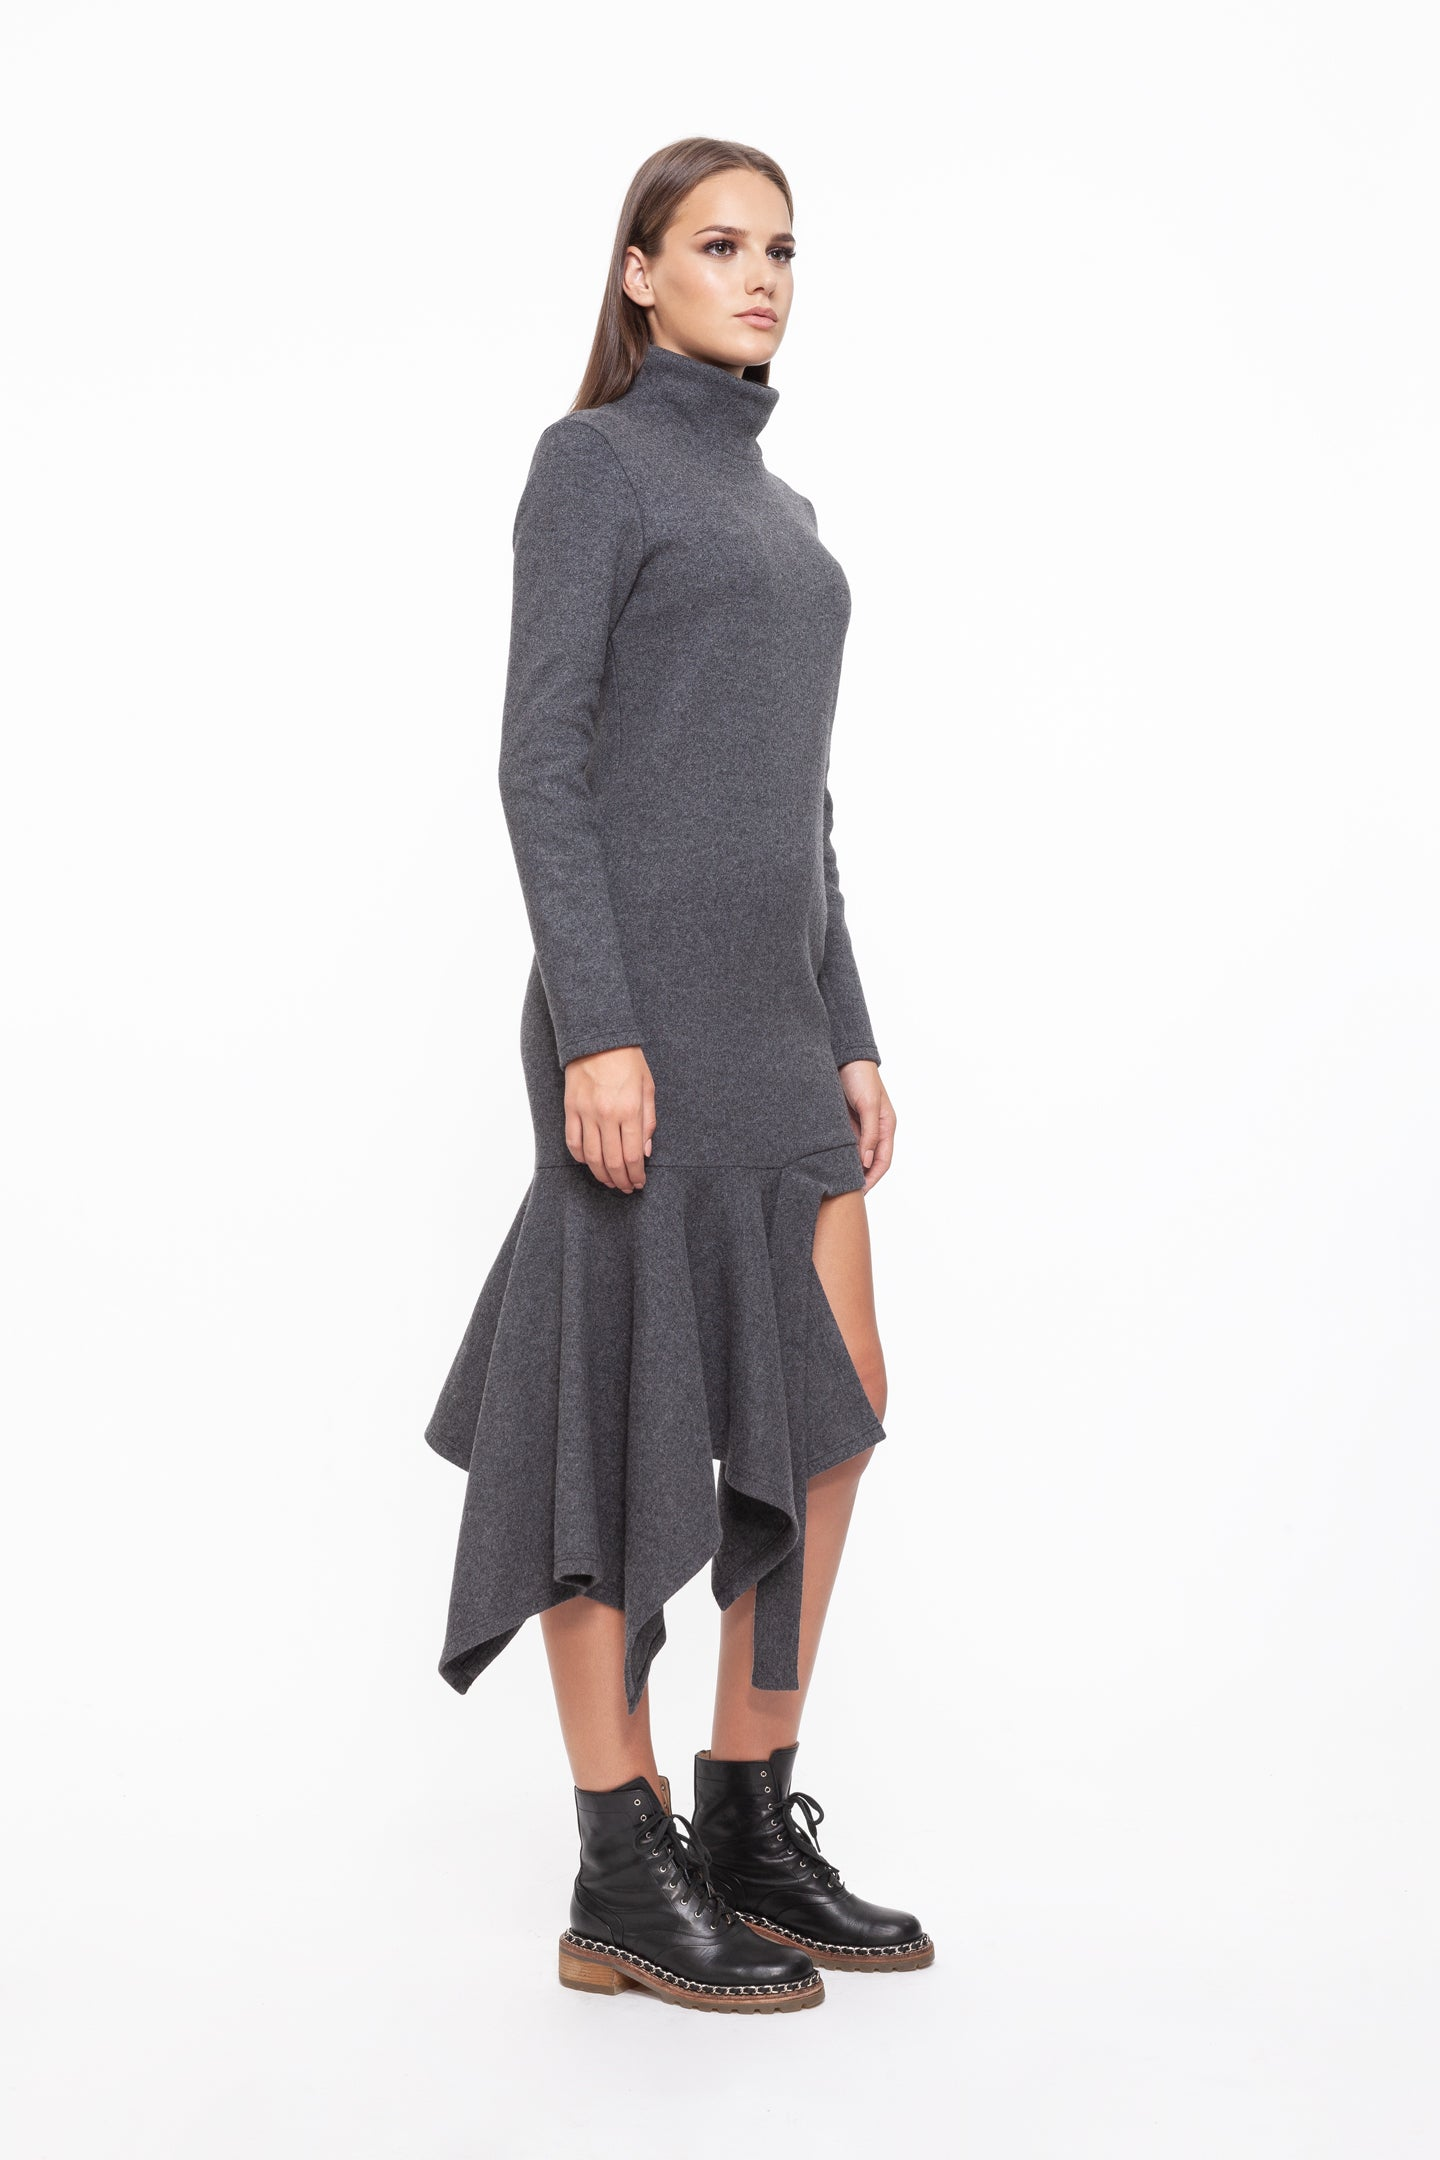 MADISON Grey Polo Wool Dress